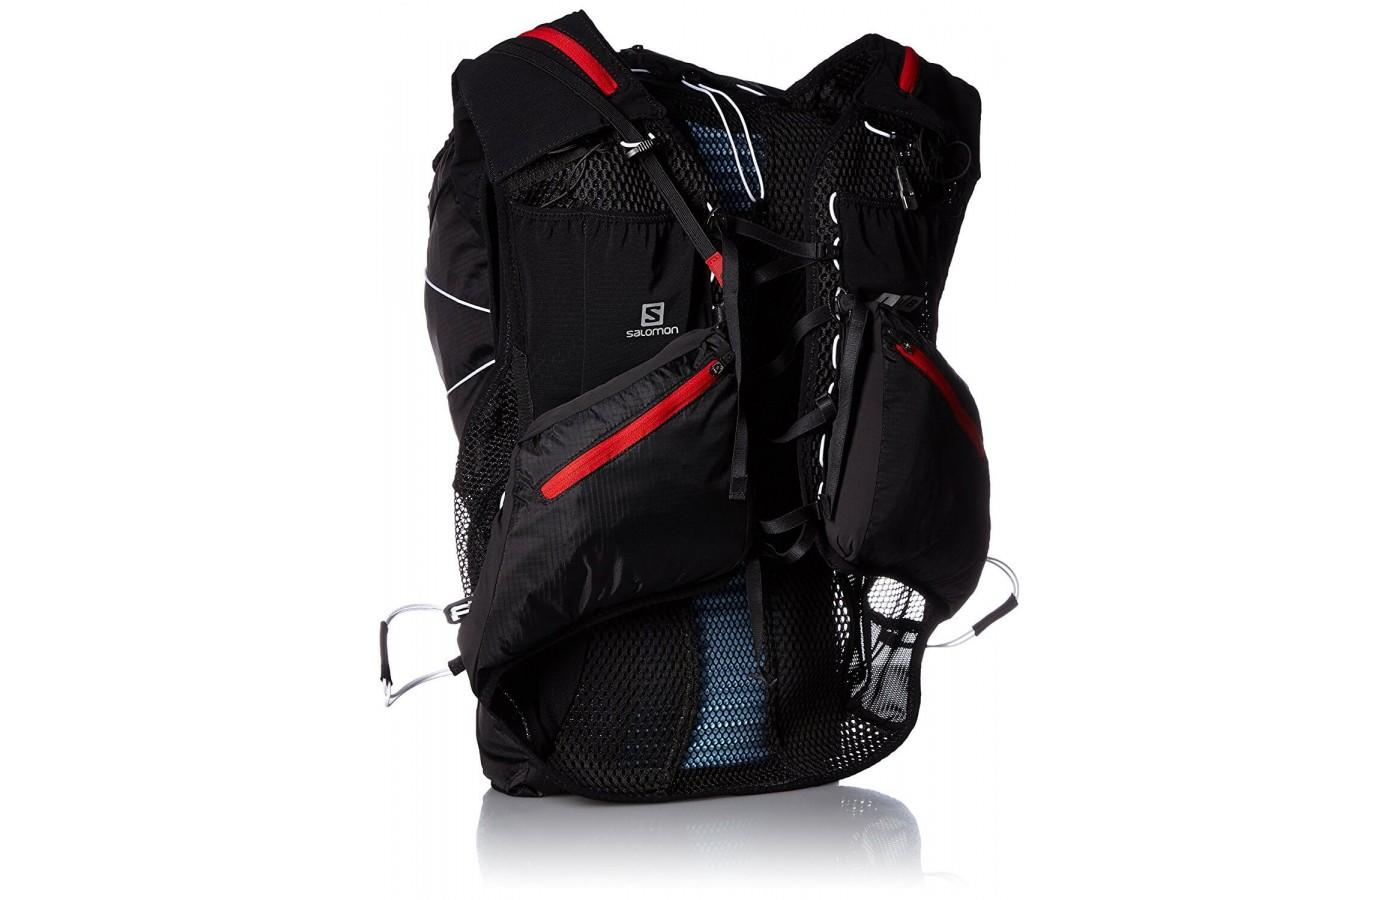 When loaded up, the Salomon S-Lab Peak 20 is robust and sturdy